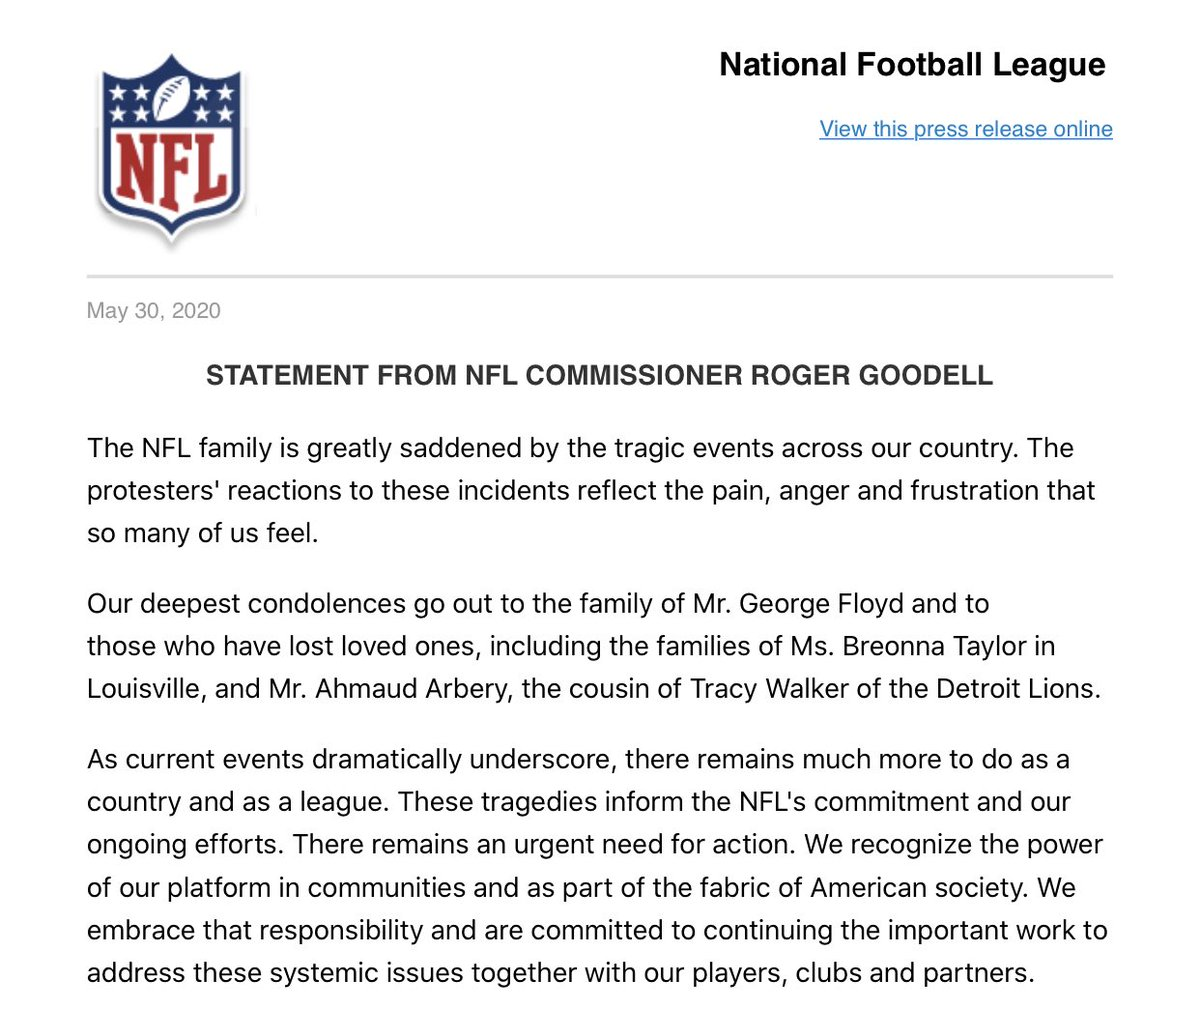 Statement from NFL Commissioner Roger Goodell: https://t.co/Tsrde84mh4